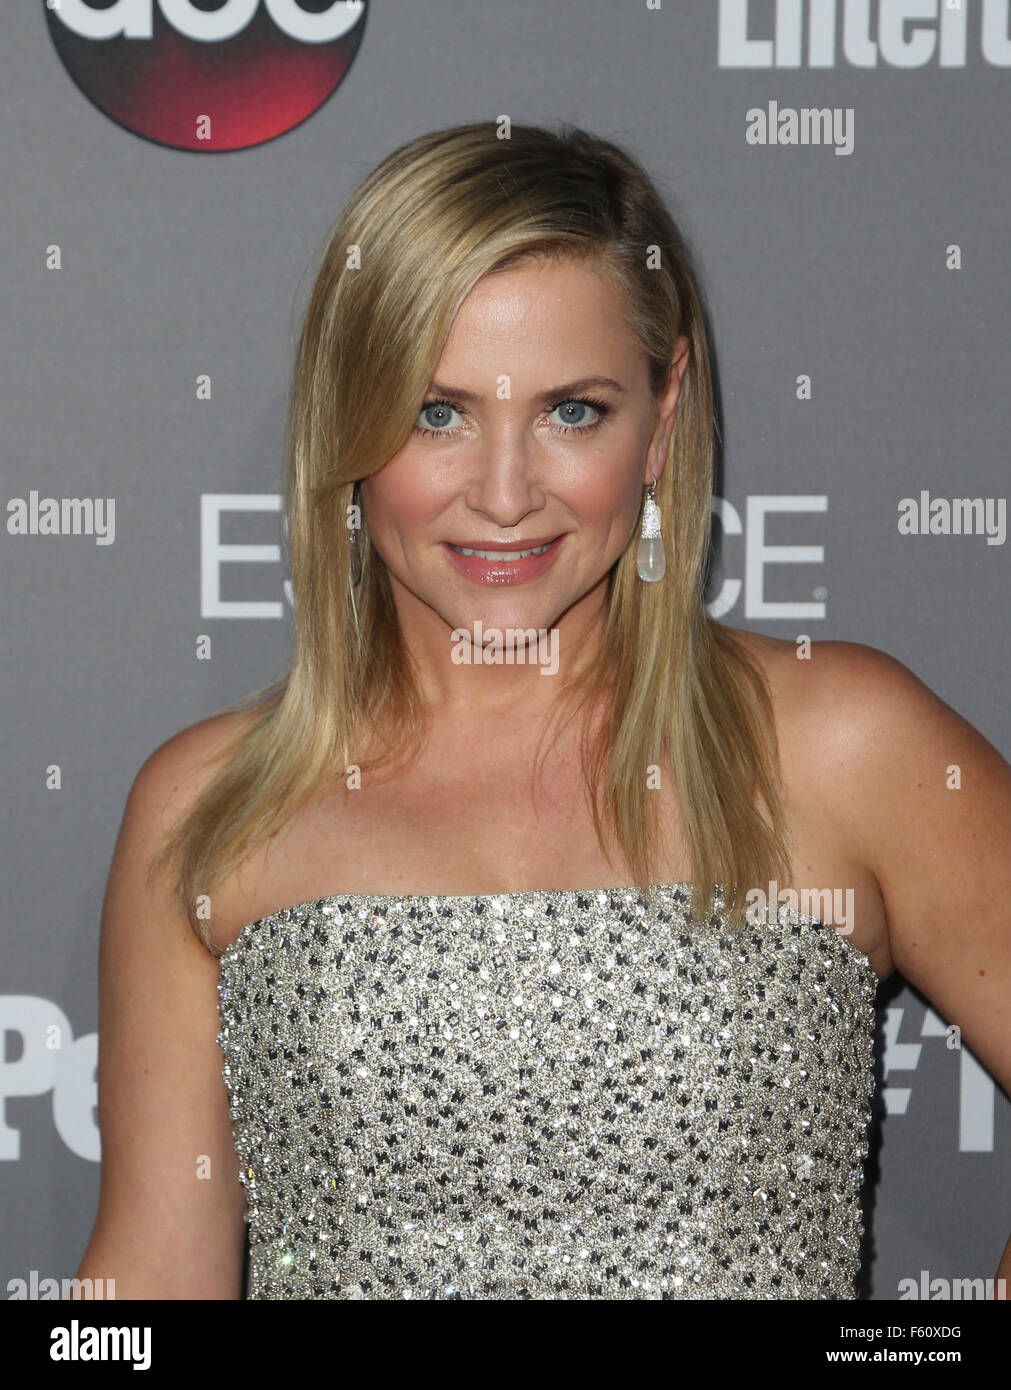 ABC's TGIT premiere event - Arrivals  Featuring: Jessica Capshaw Where: Los Angeles, California, United States When: Stock Photo